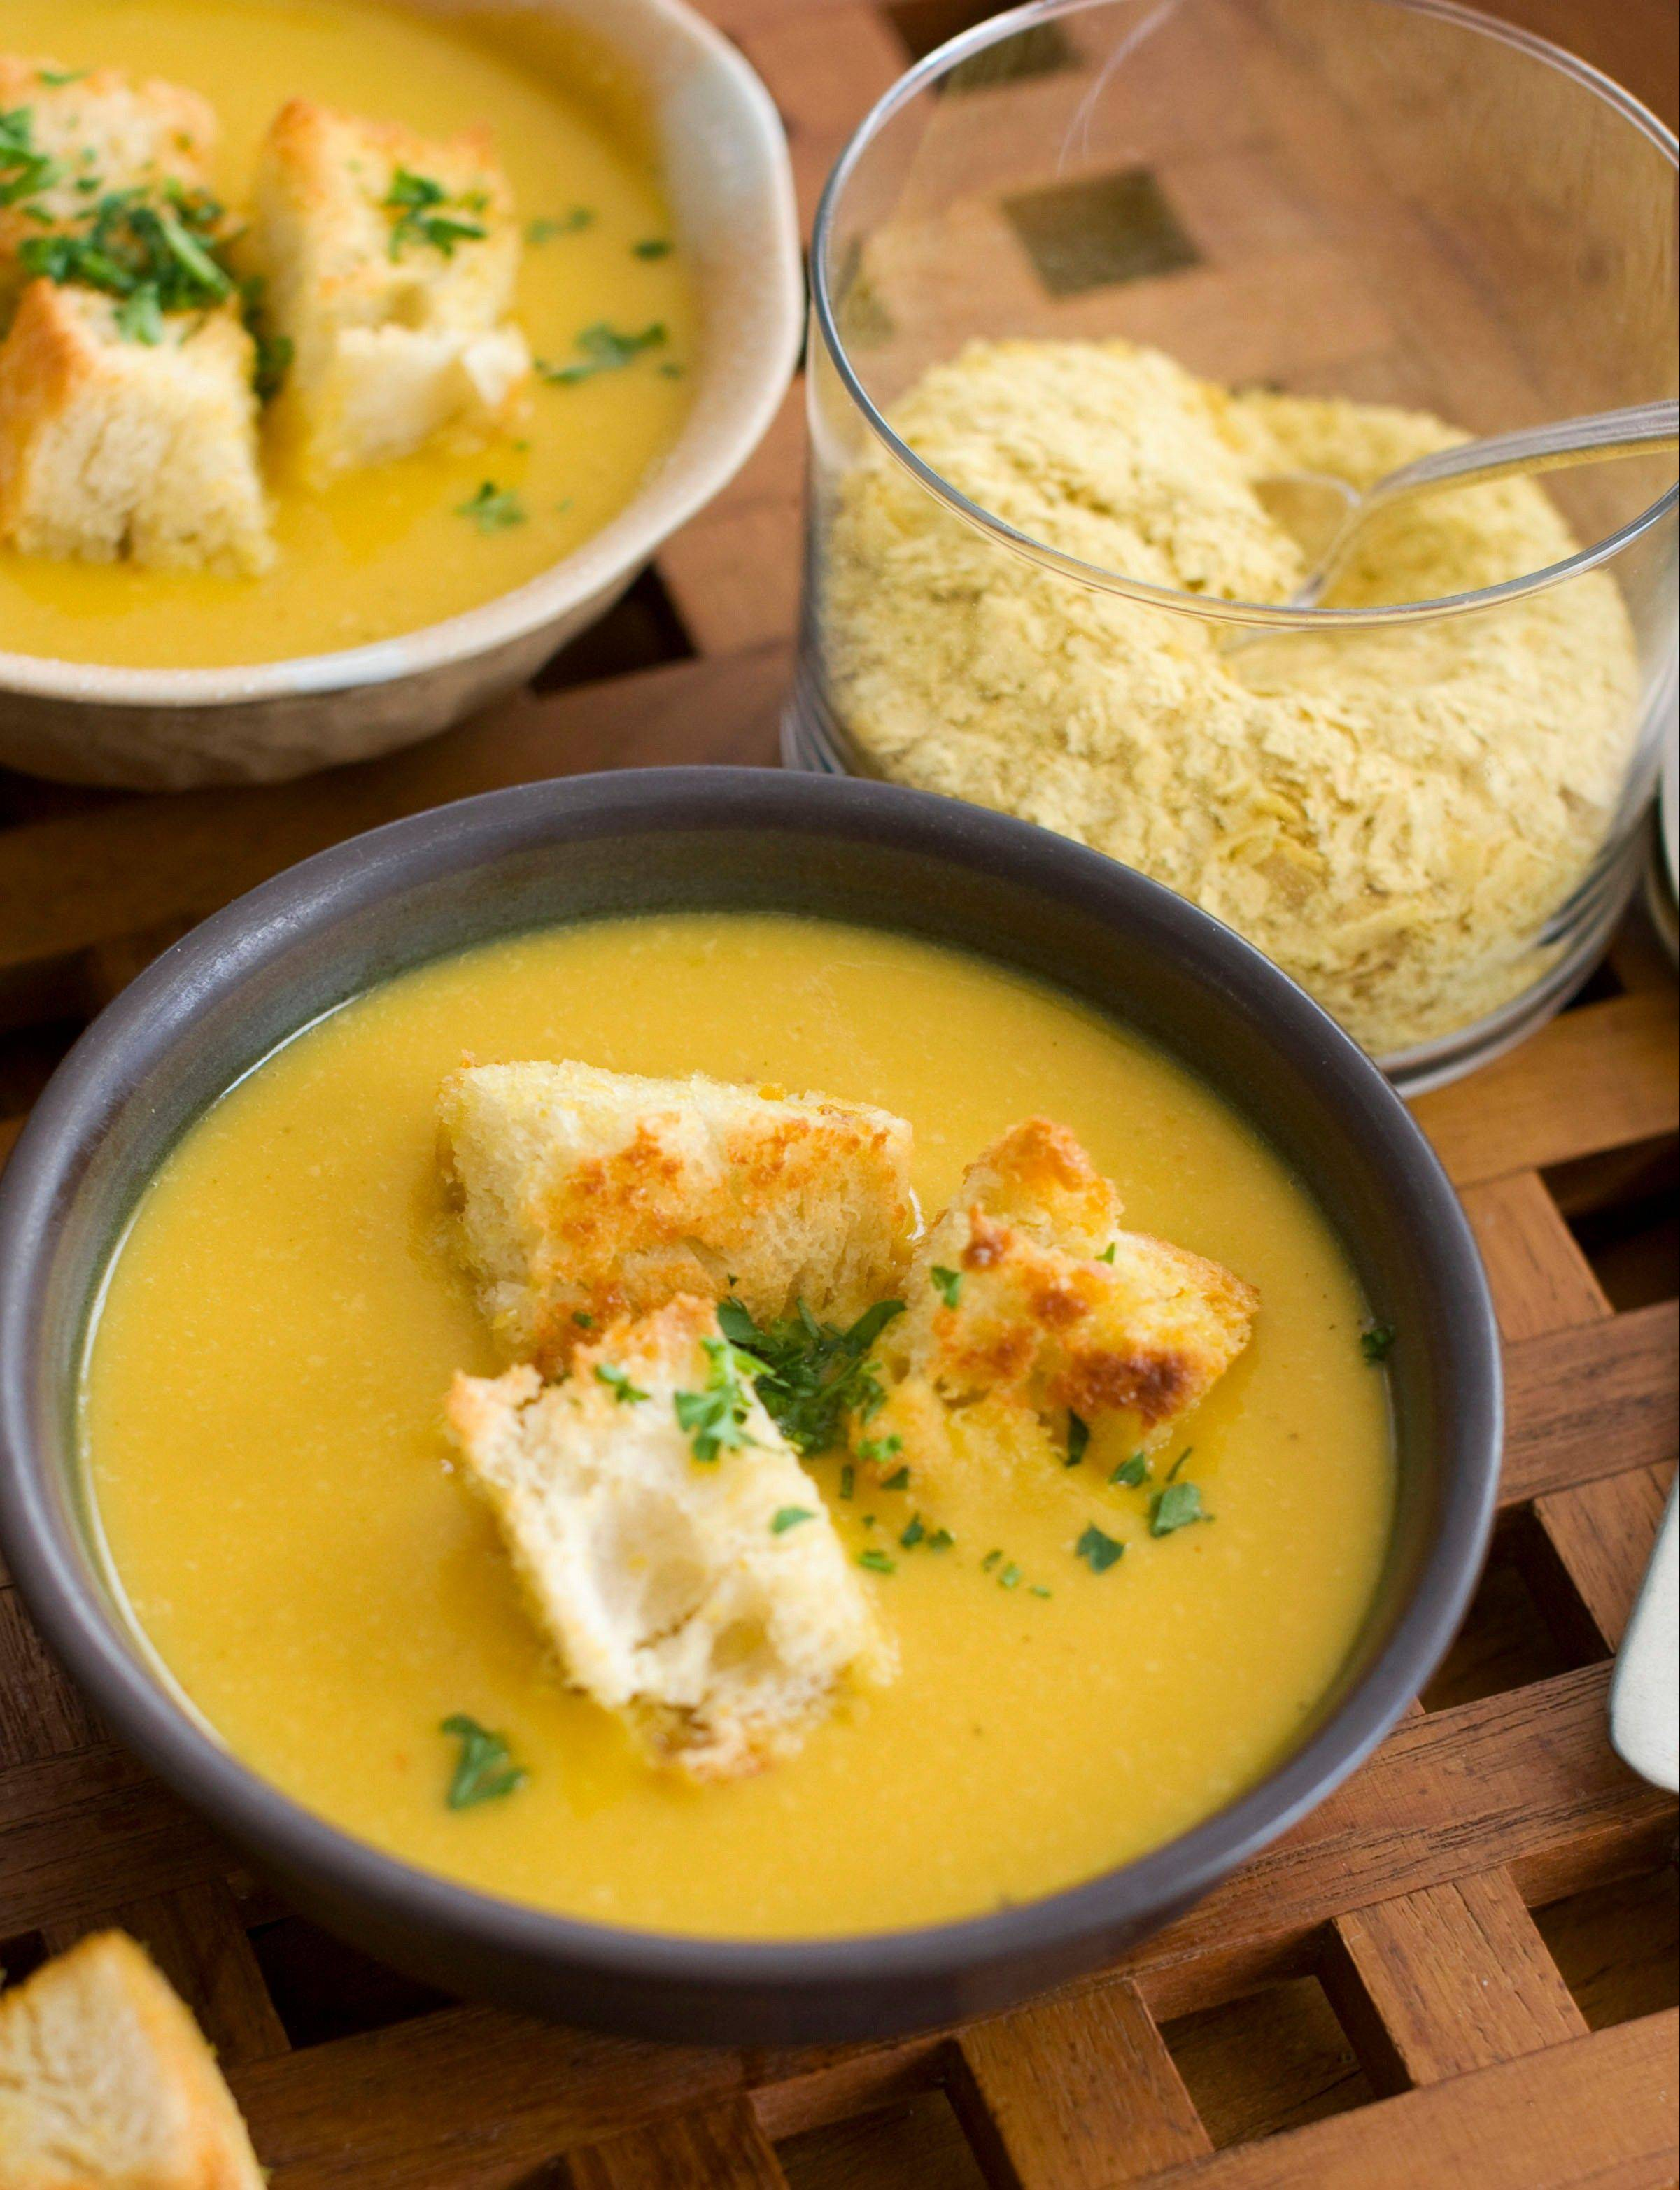 Nutritional yeast flakes lend a savory, cheesy flavor to pumpkin and white bean soup. The flakes season the soup and the sourdough croutons.